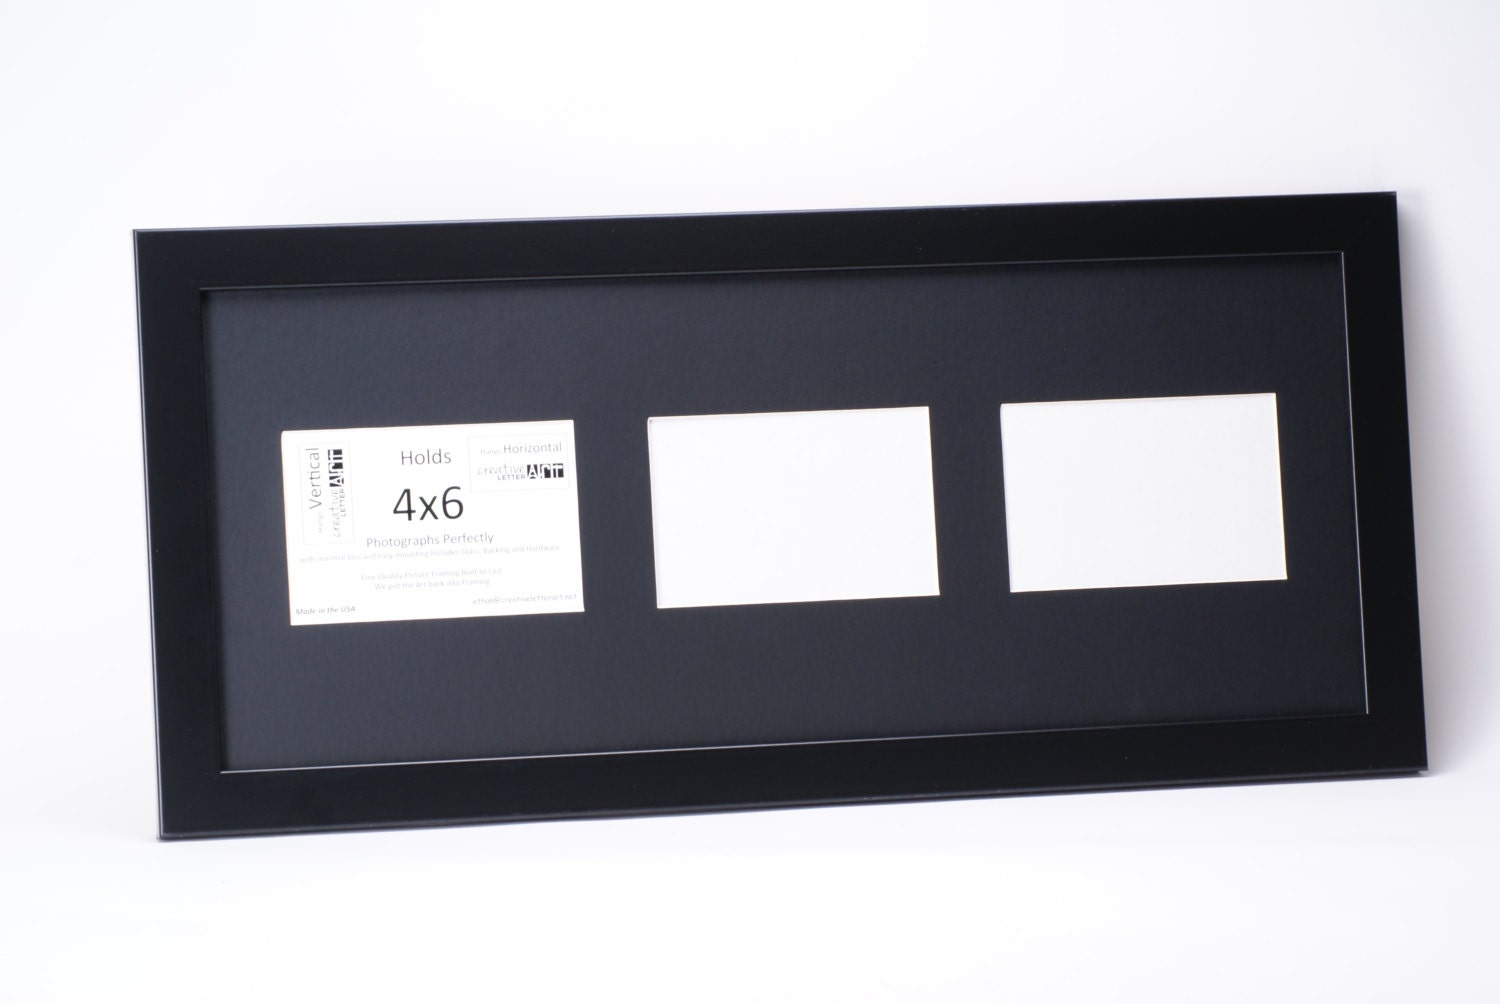 4x6 vertical 3 4 5 6 7 8 opening black picture frame with collage sold by creativeletterart jeuxipadfo Gallery